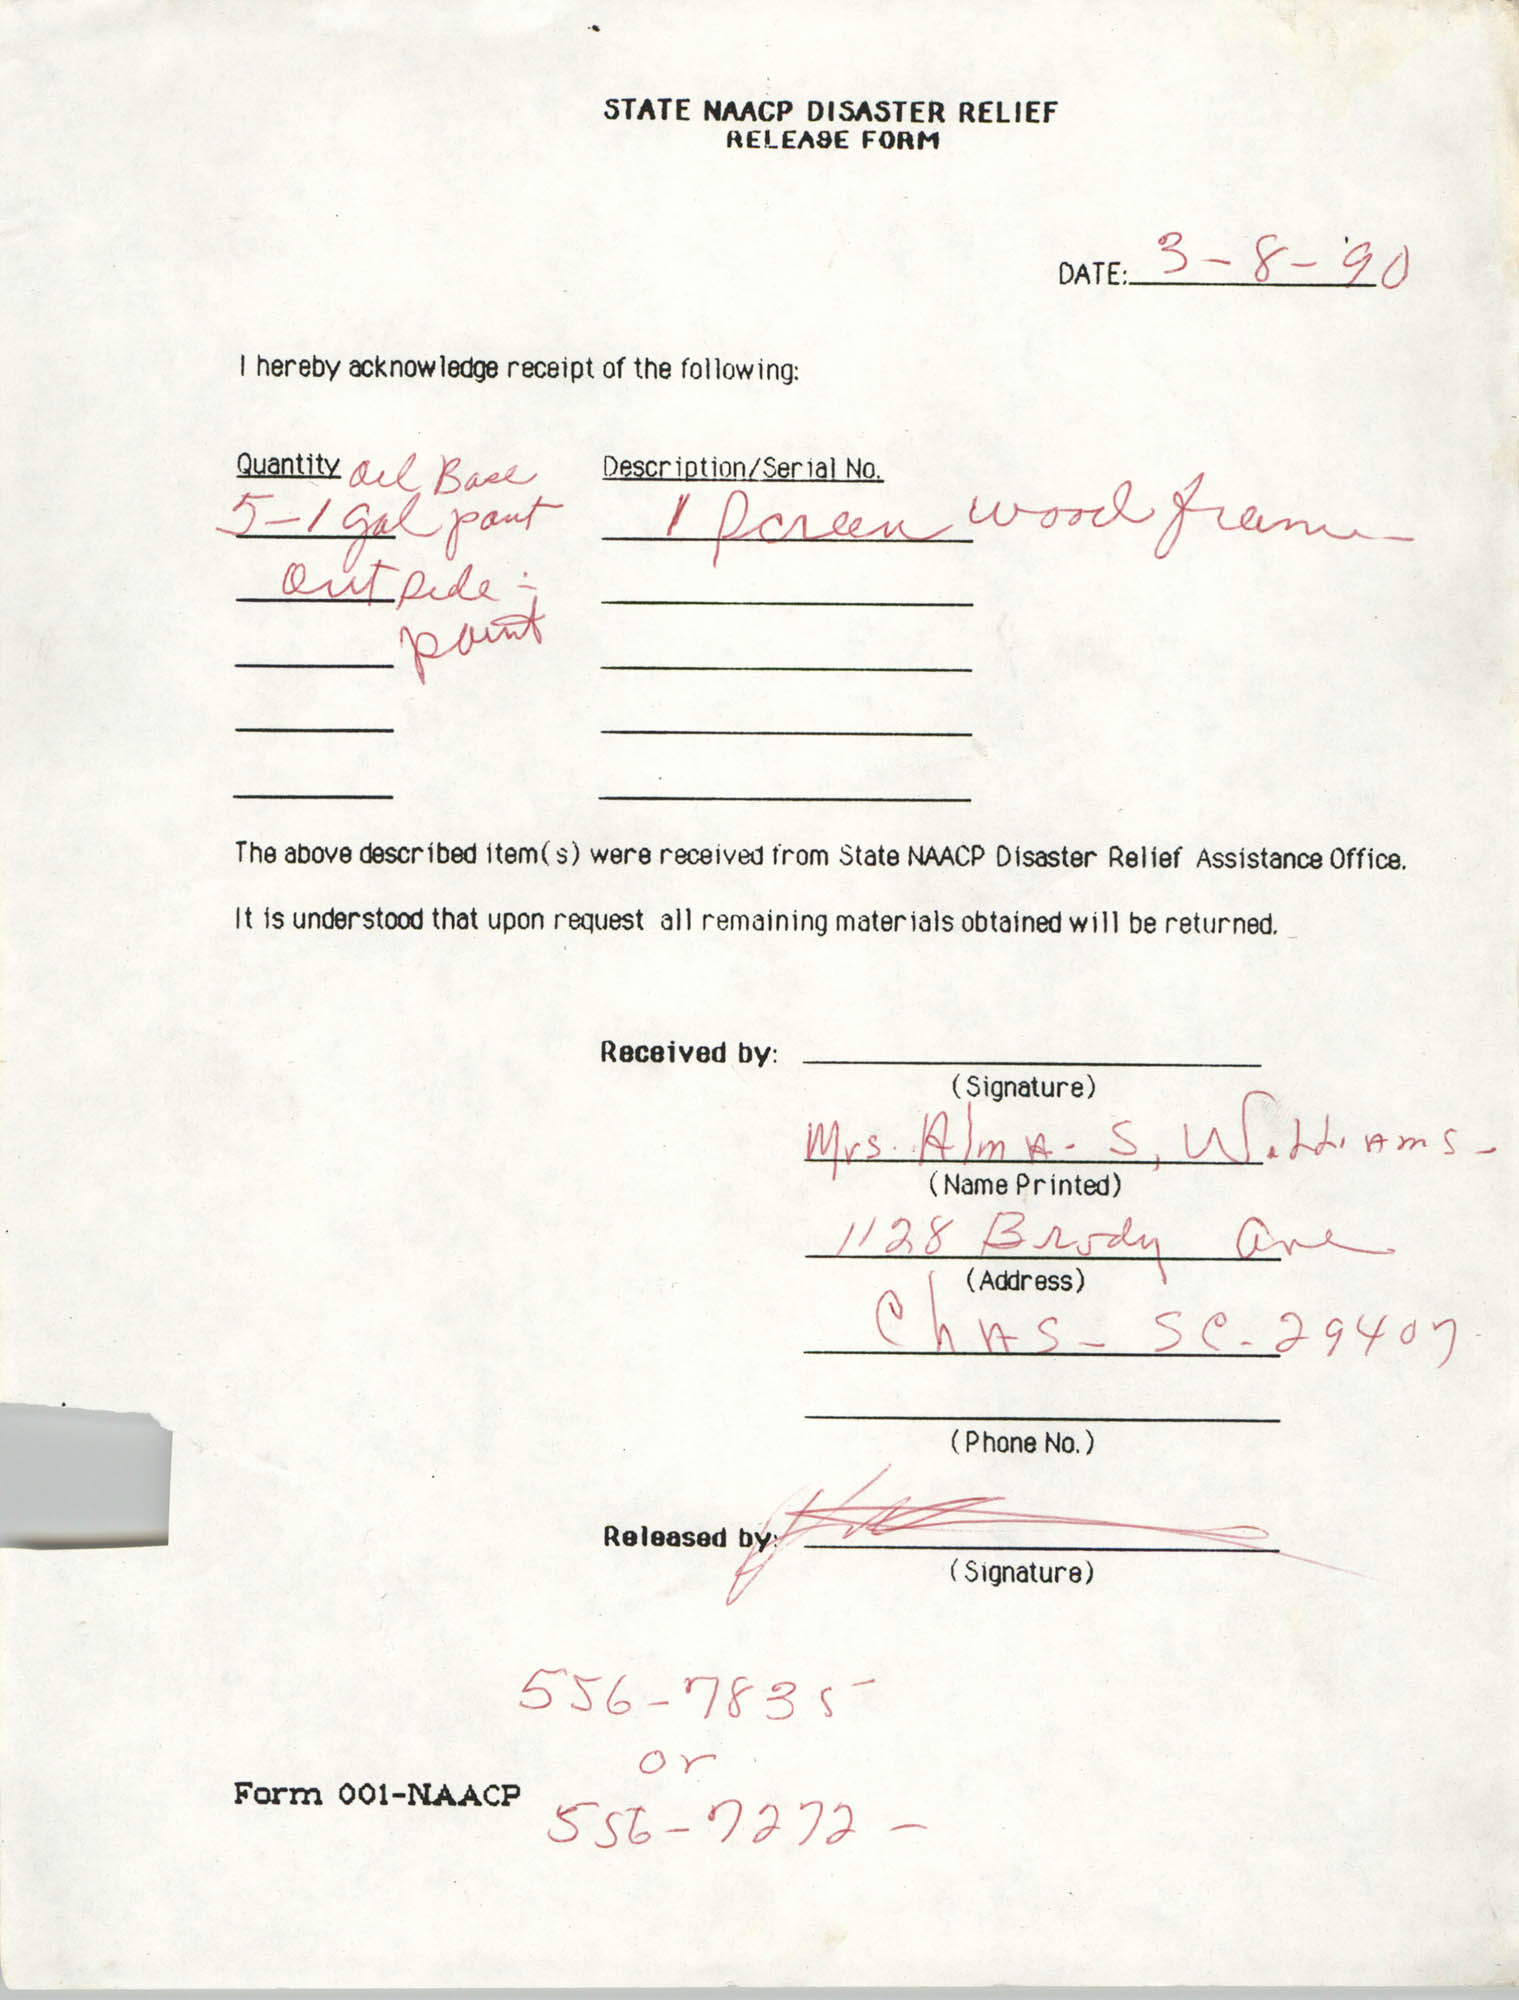 State NAACP Disaster Relief, Hurricane Huge Release Form, 1989, Page 11